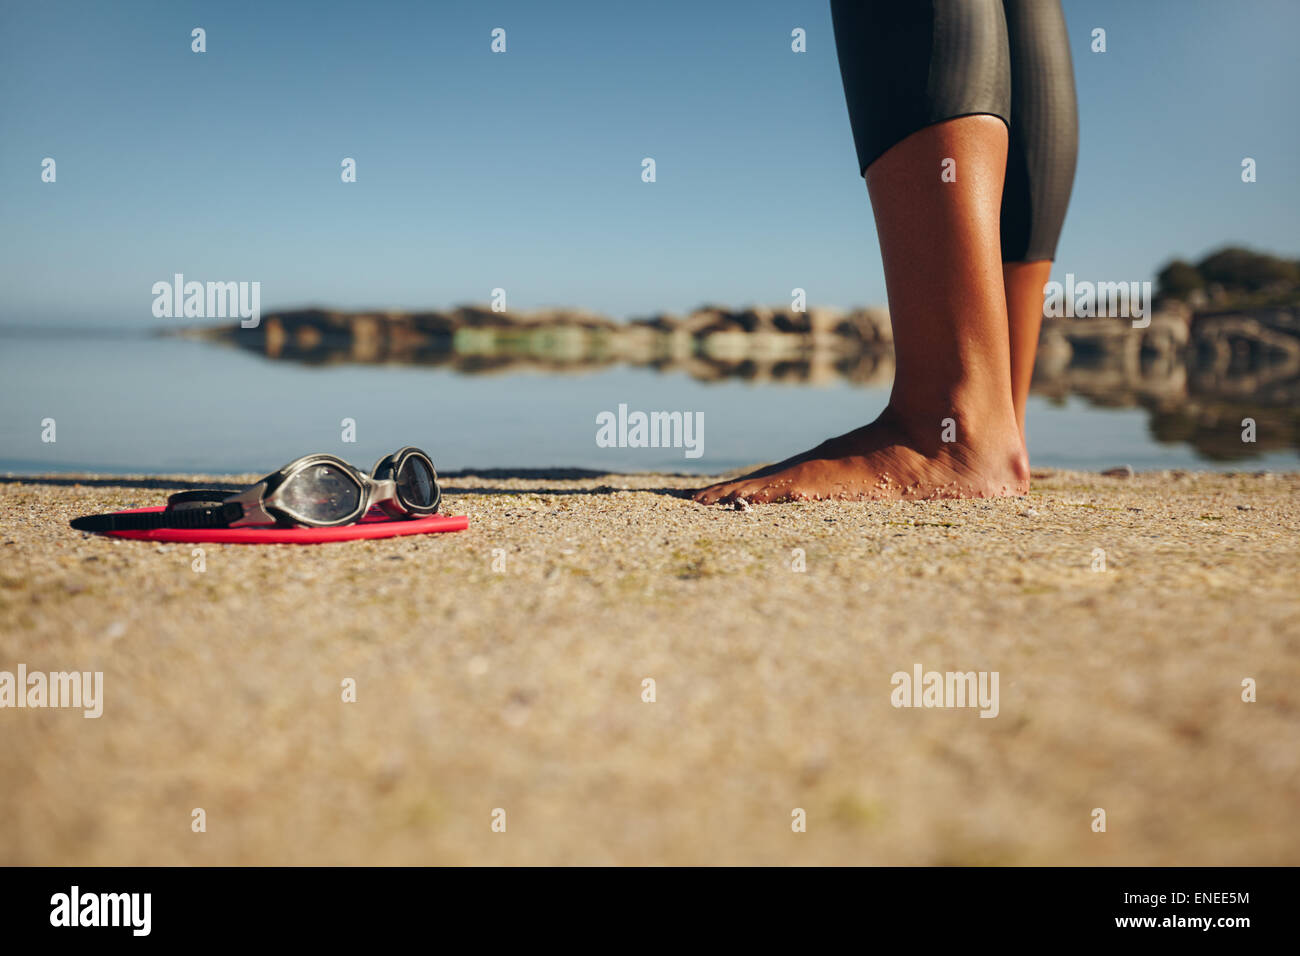 Swim goggles on the sand with feet of a woman standing by. Focus on goggles. - Stock Image